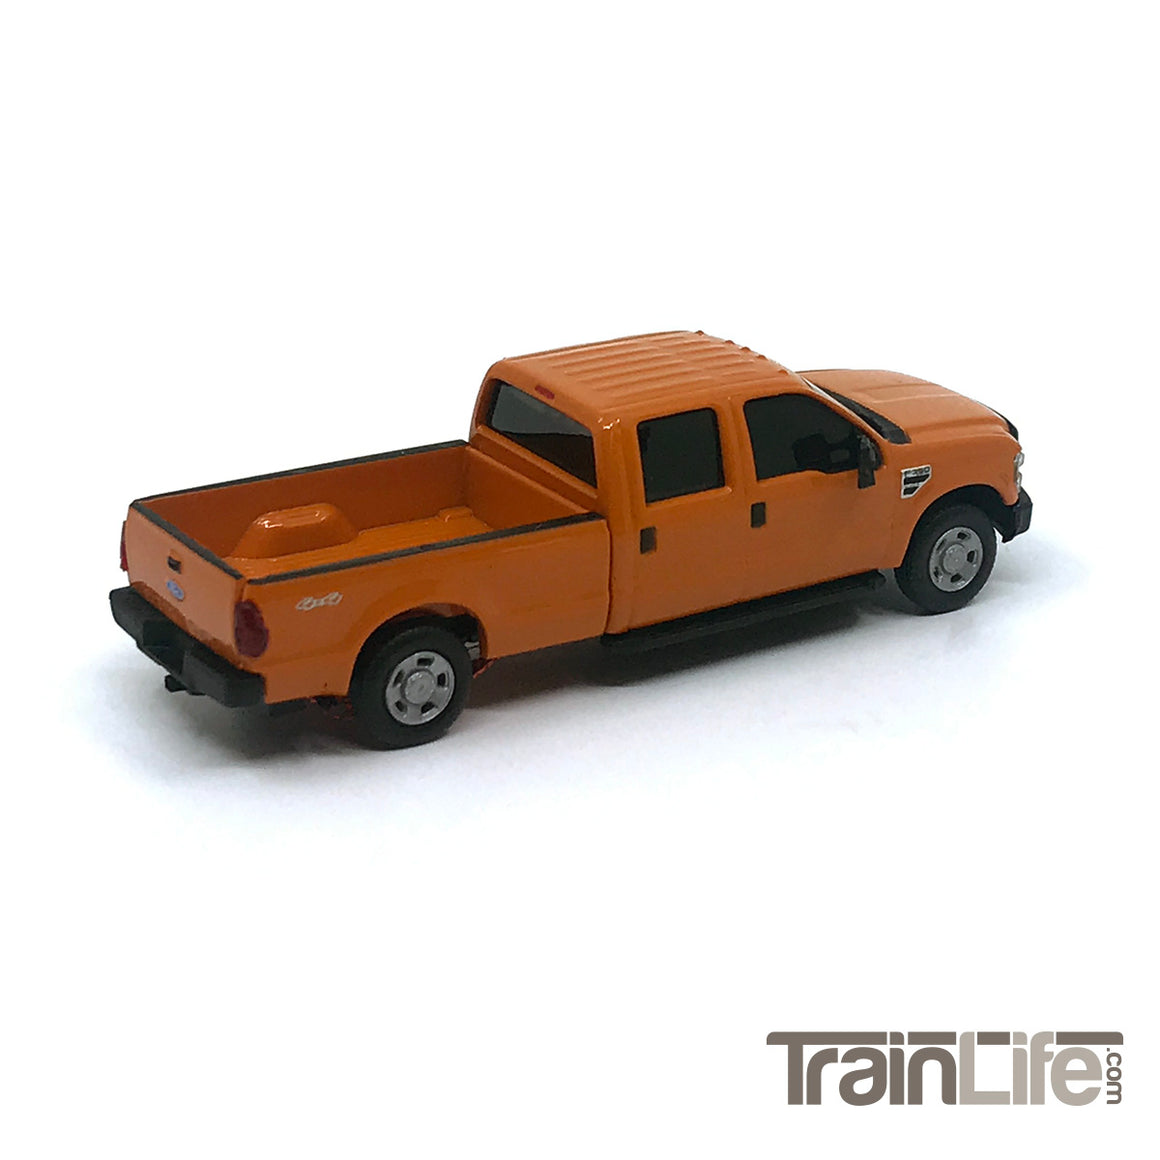 HO Scale: Lighted Ford F350 Crew Cab Truck - Orange